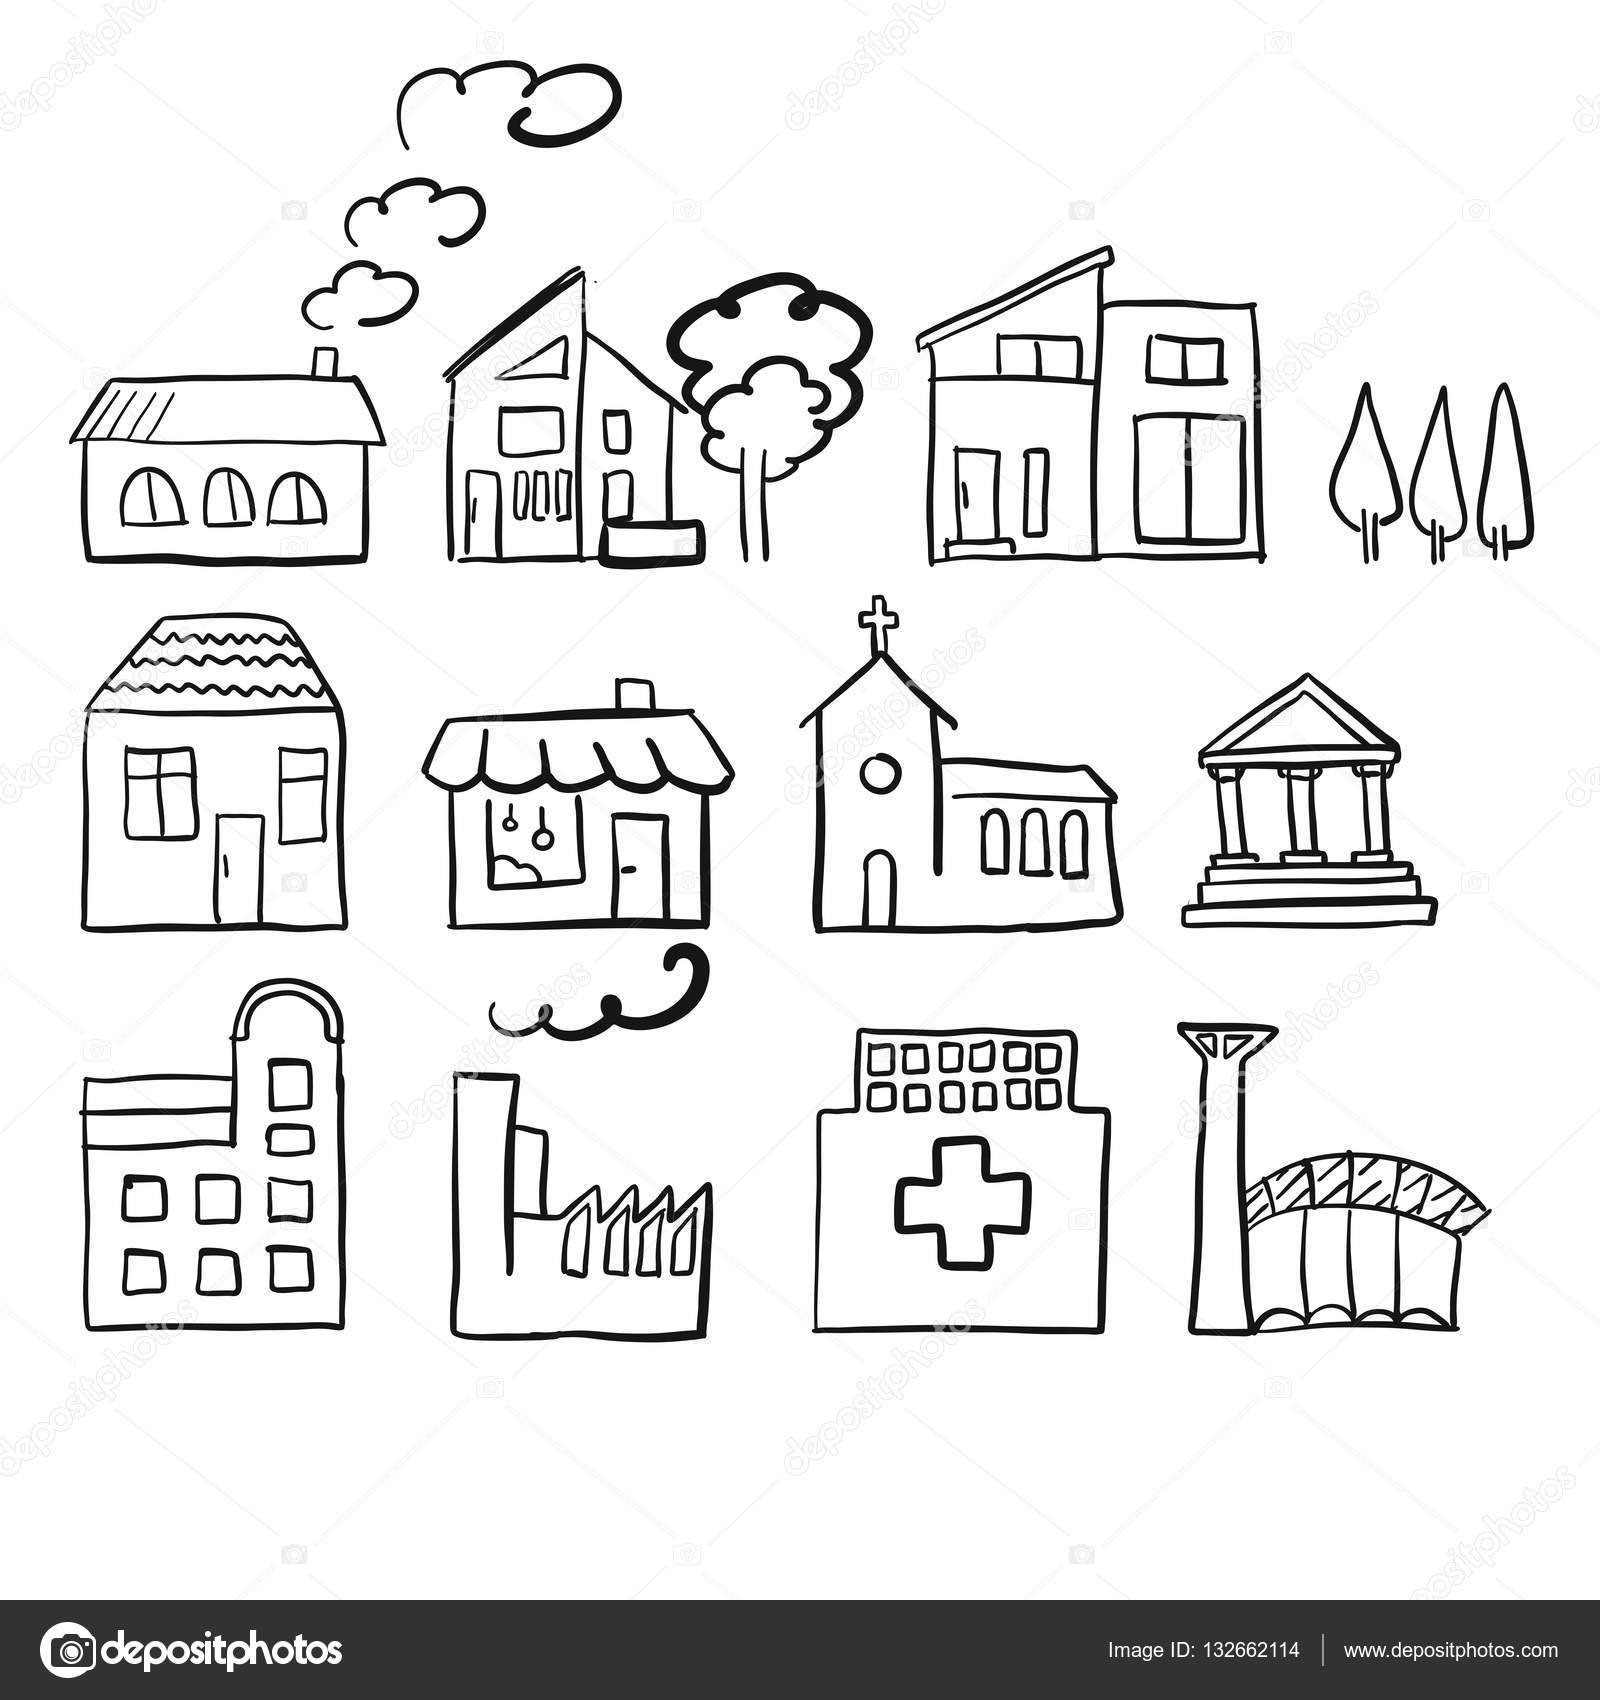 Various house types fast vector sketch stock vector mail various house types fast vector sketch stock vector ccuart Gallery